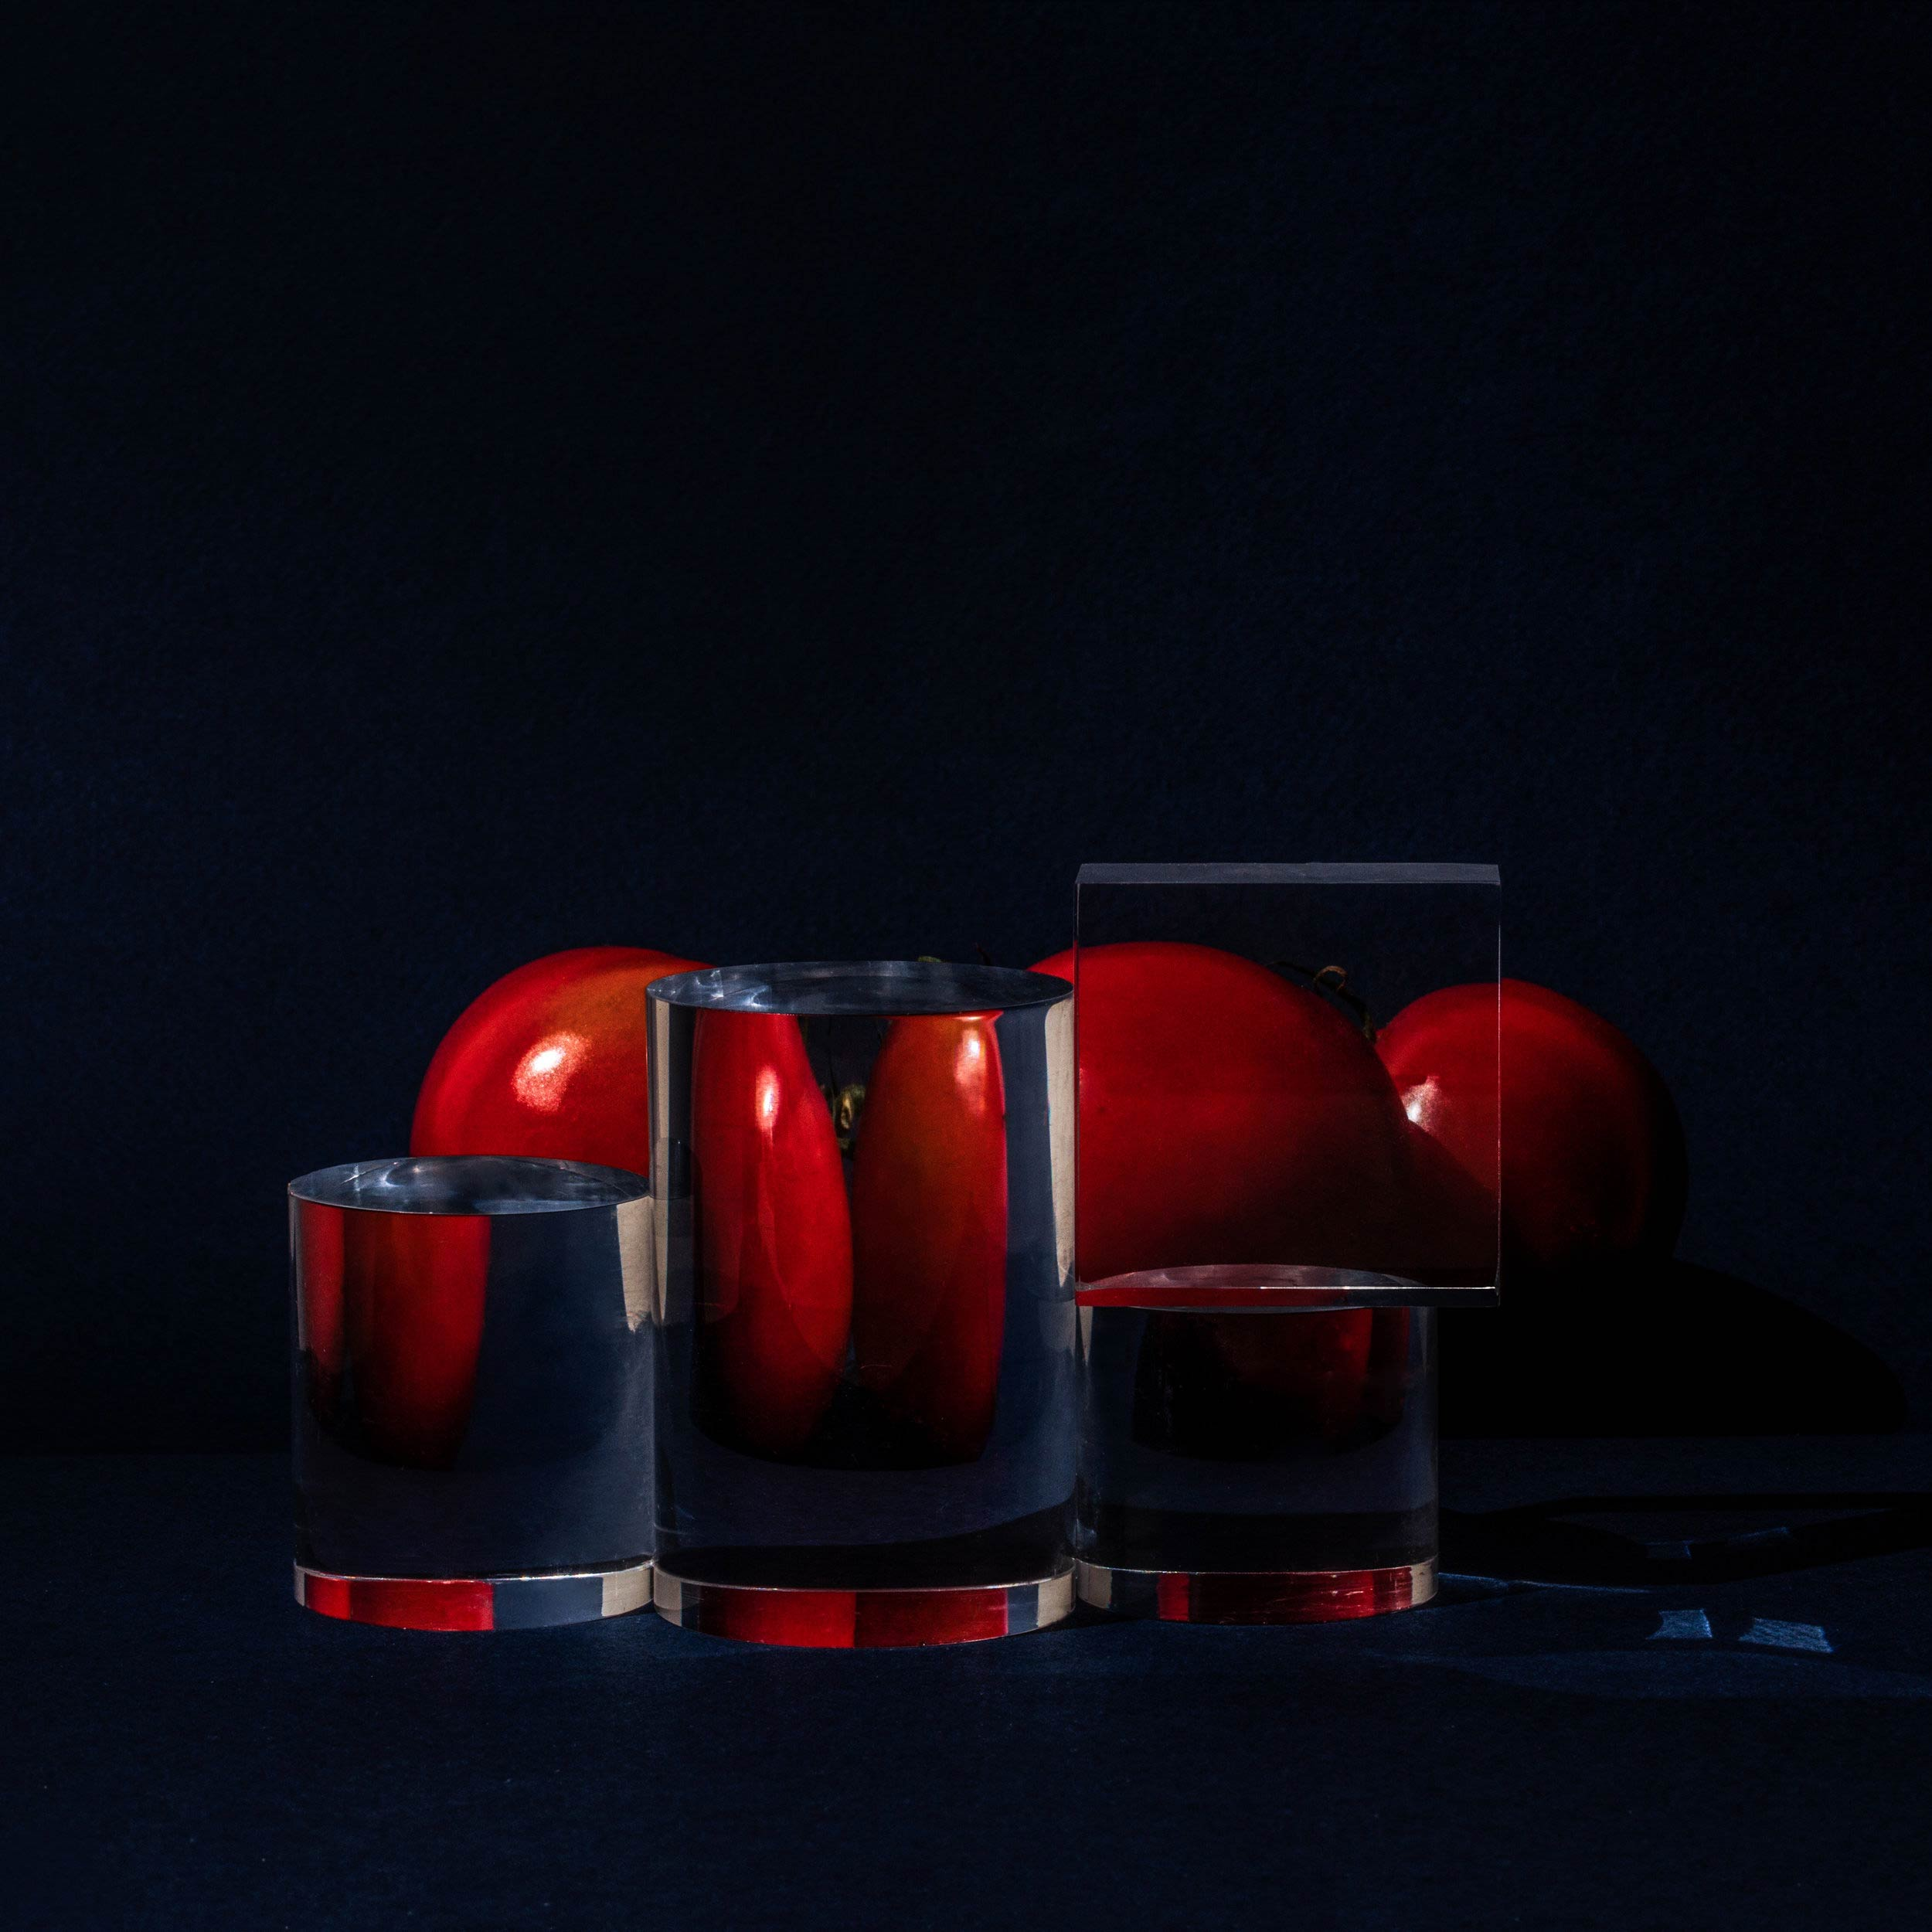 distorded-susan-sakoff-still-life-photography-7